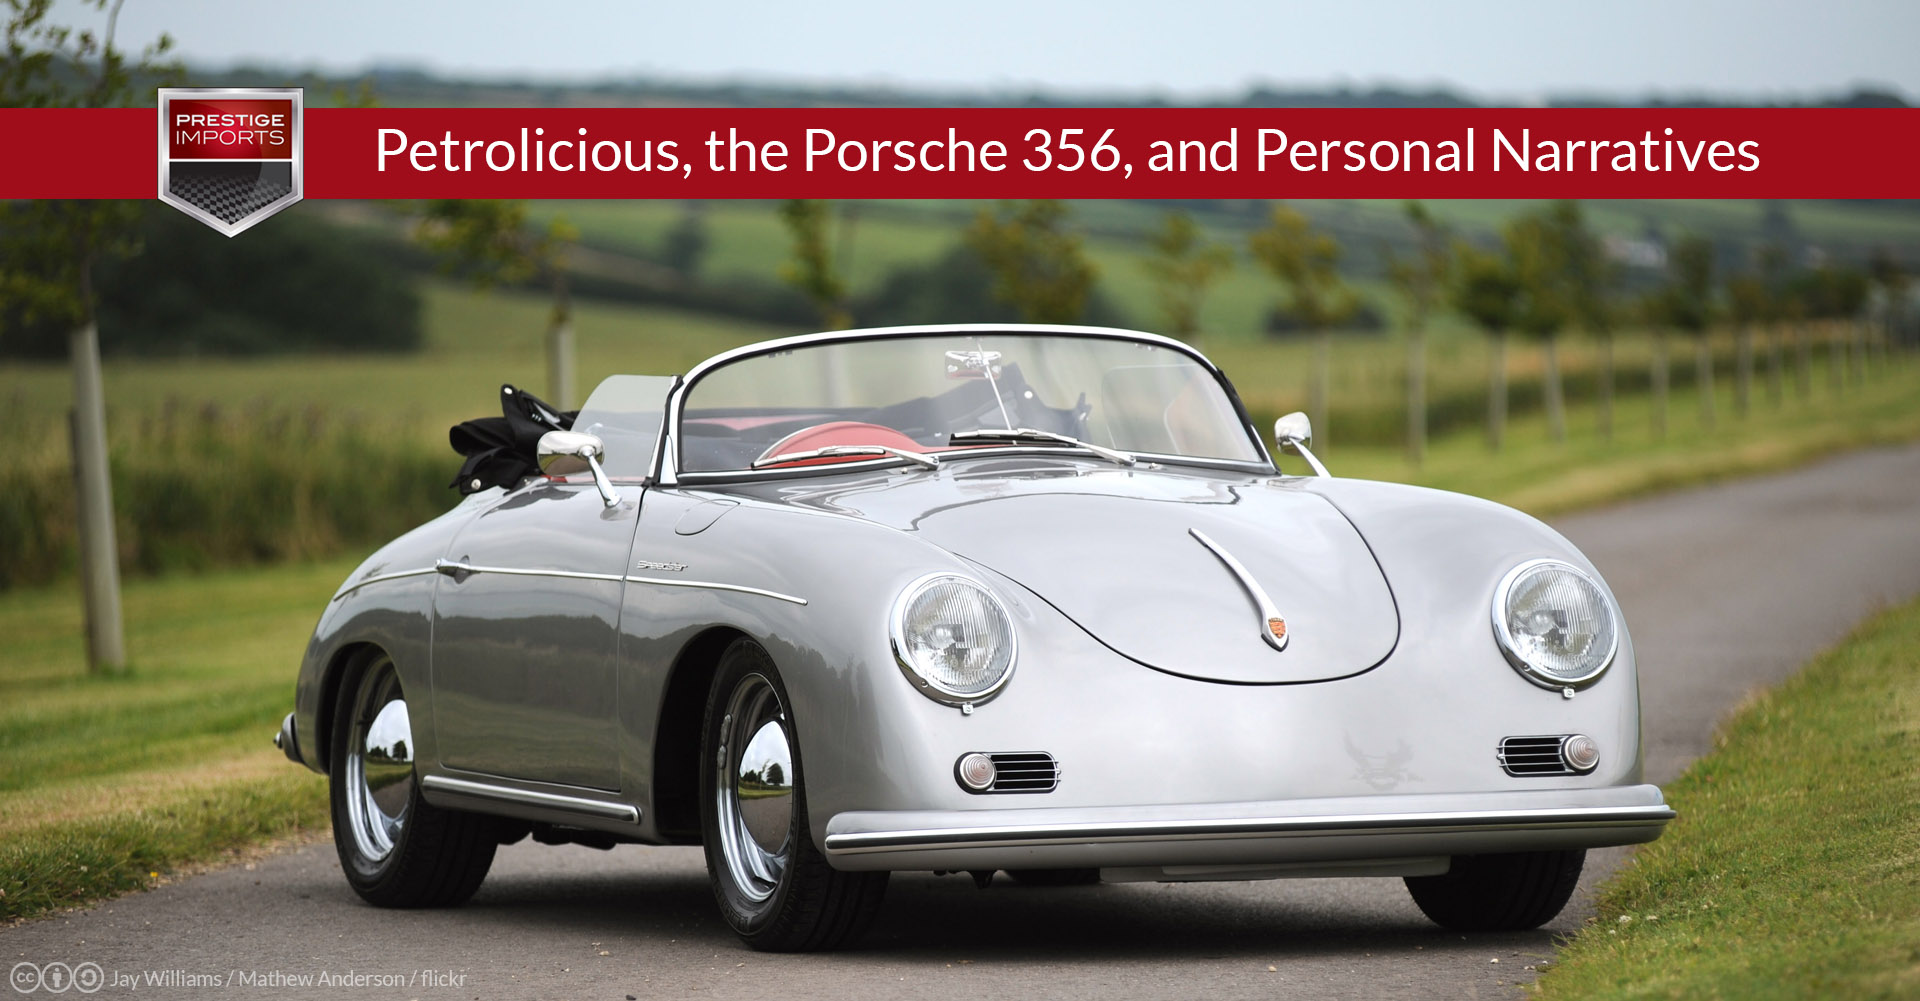 Petrolicious, the Porsche 356, and Personal Narratives